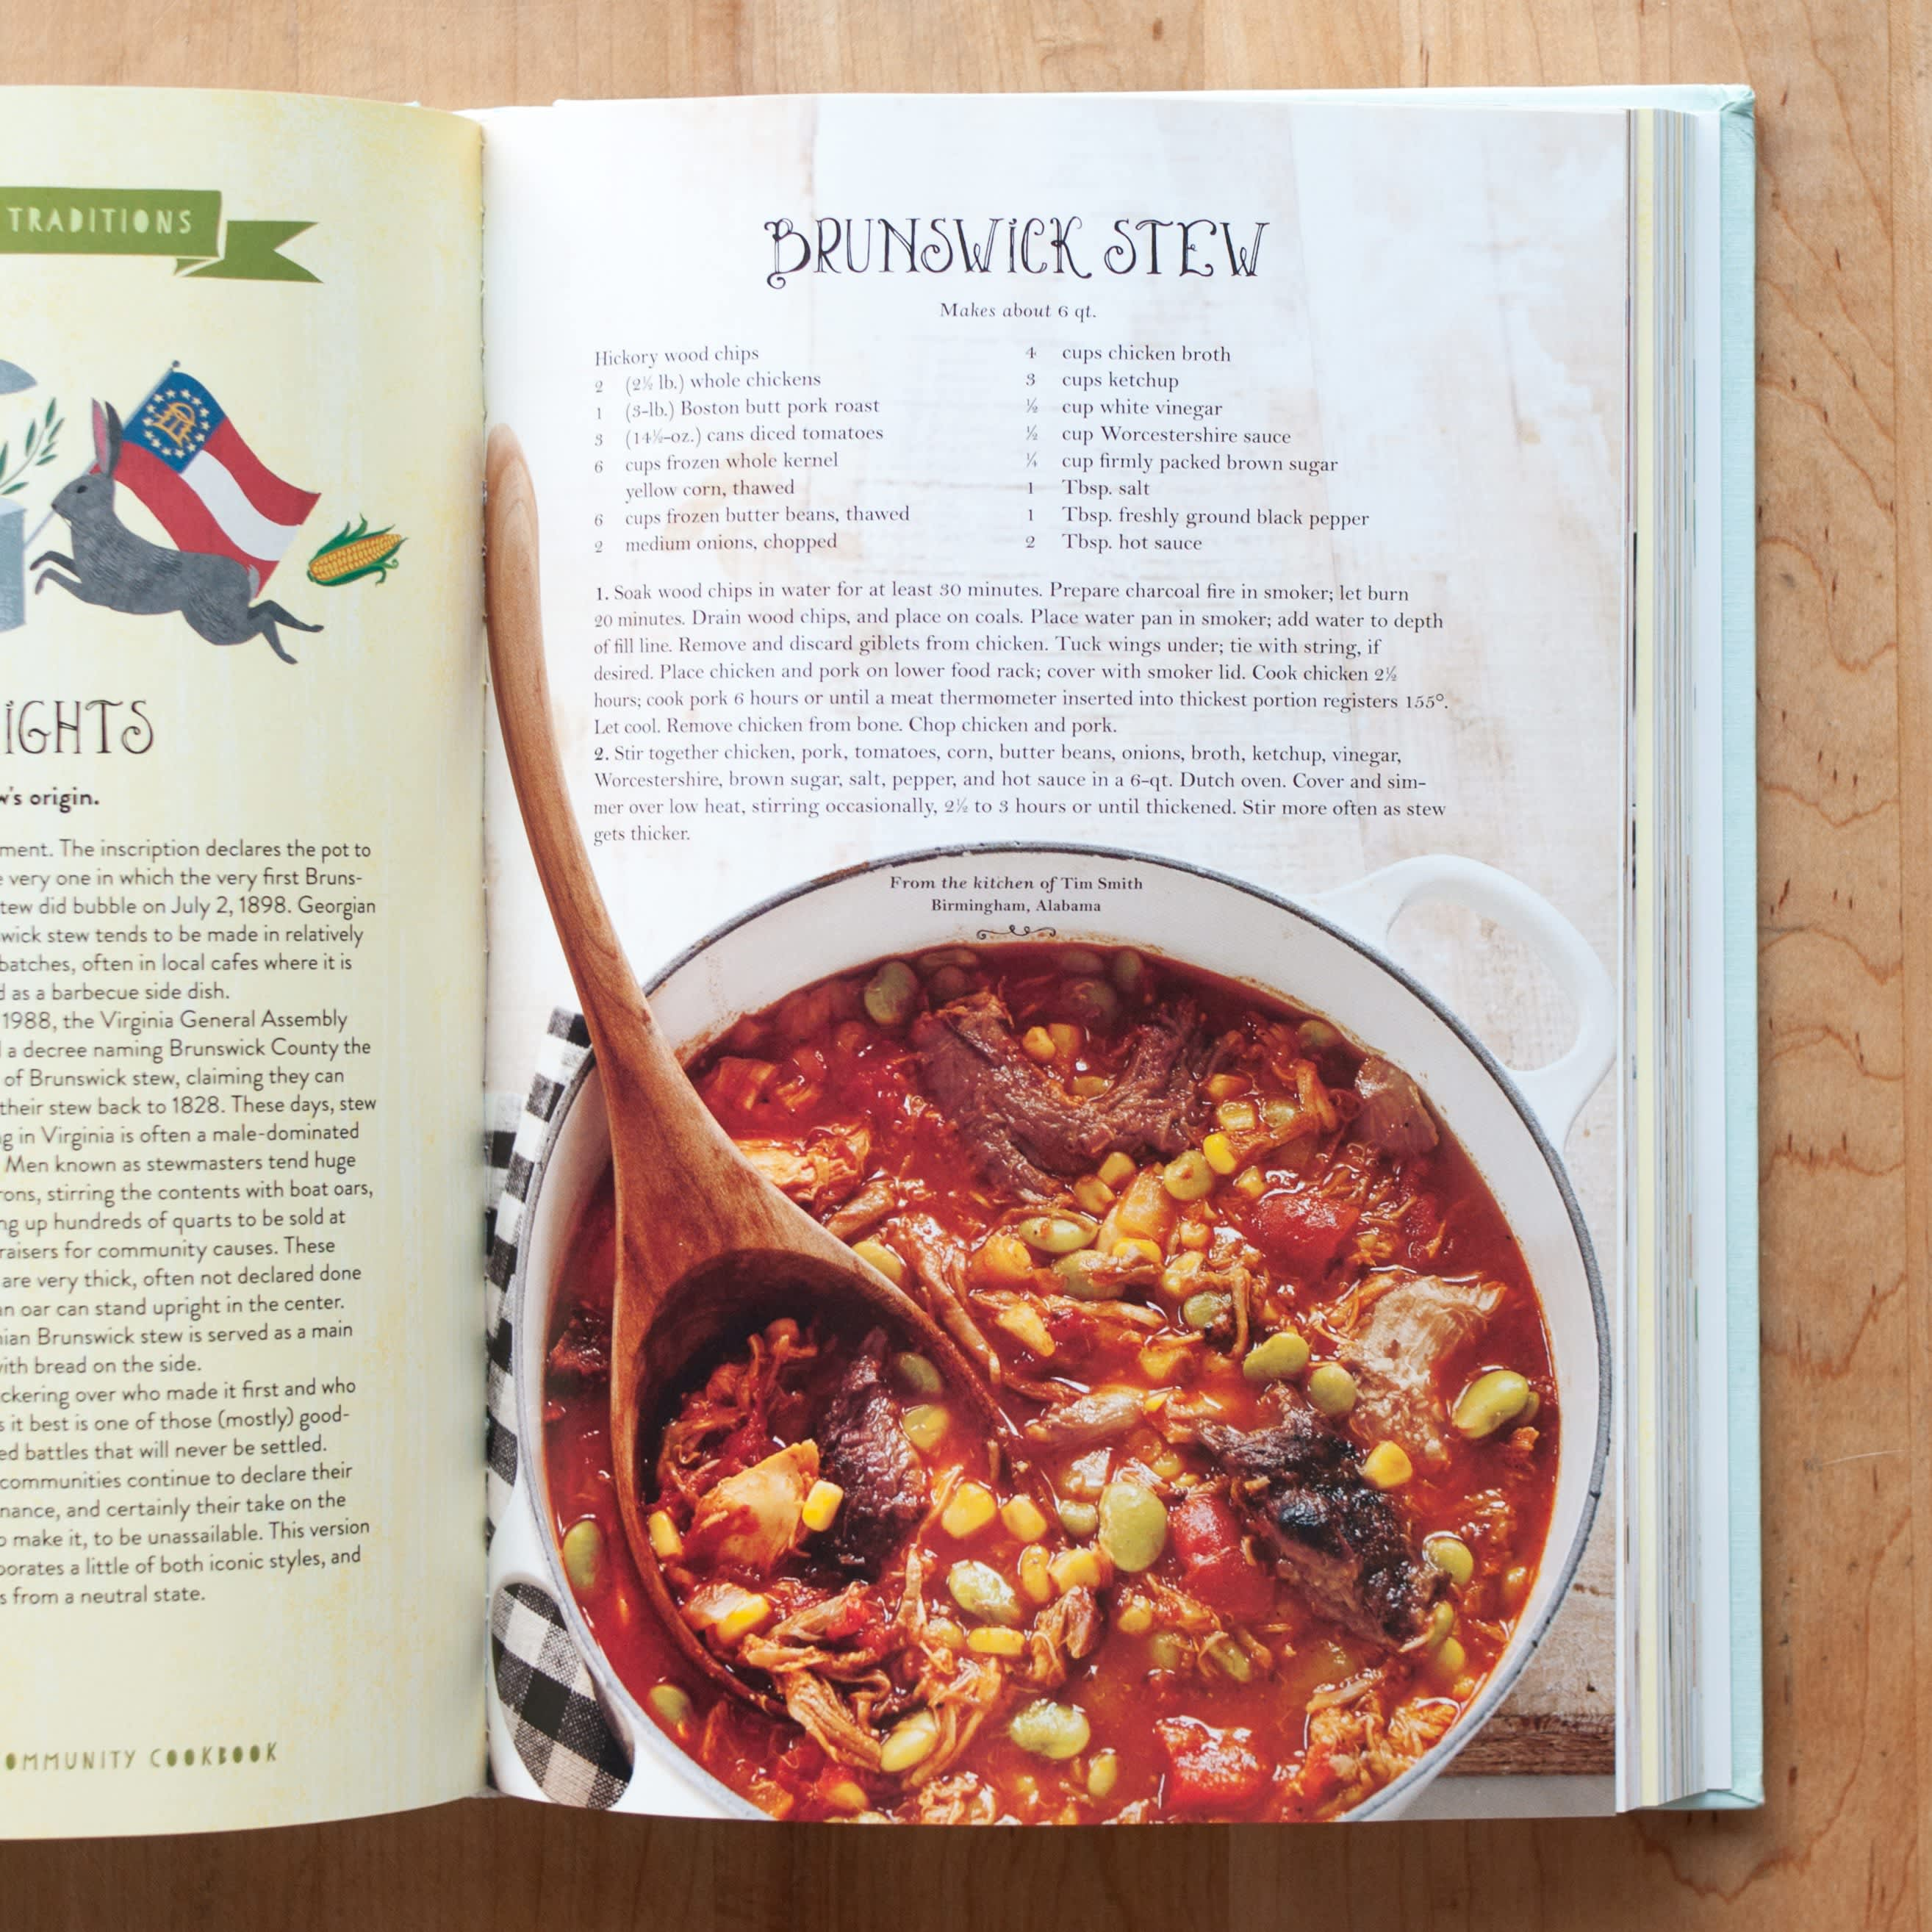 Game On Community Cookbooks Southern Living Has Set The New Standard Kitchn